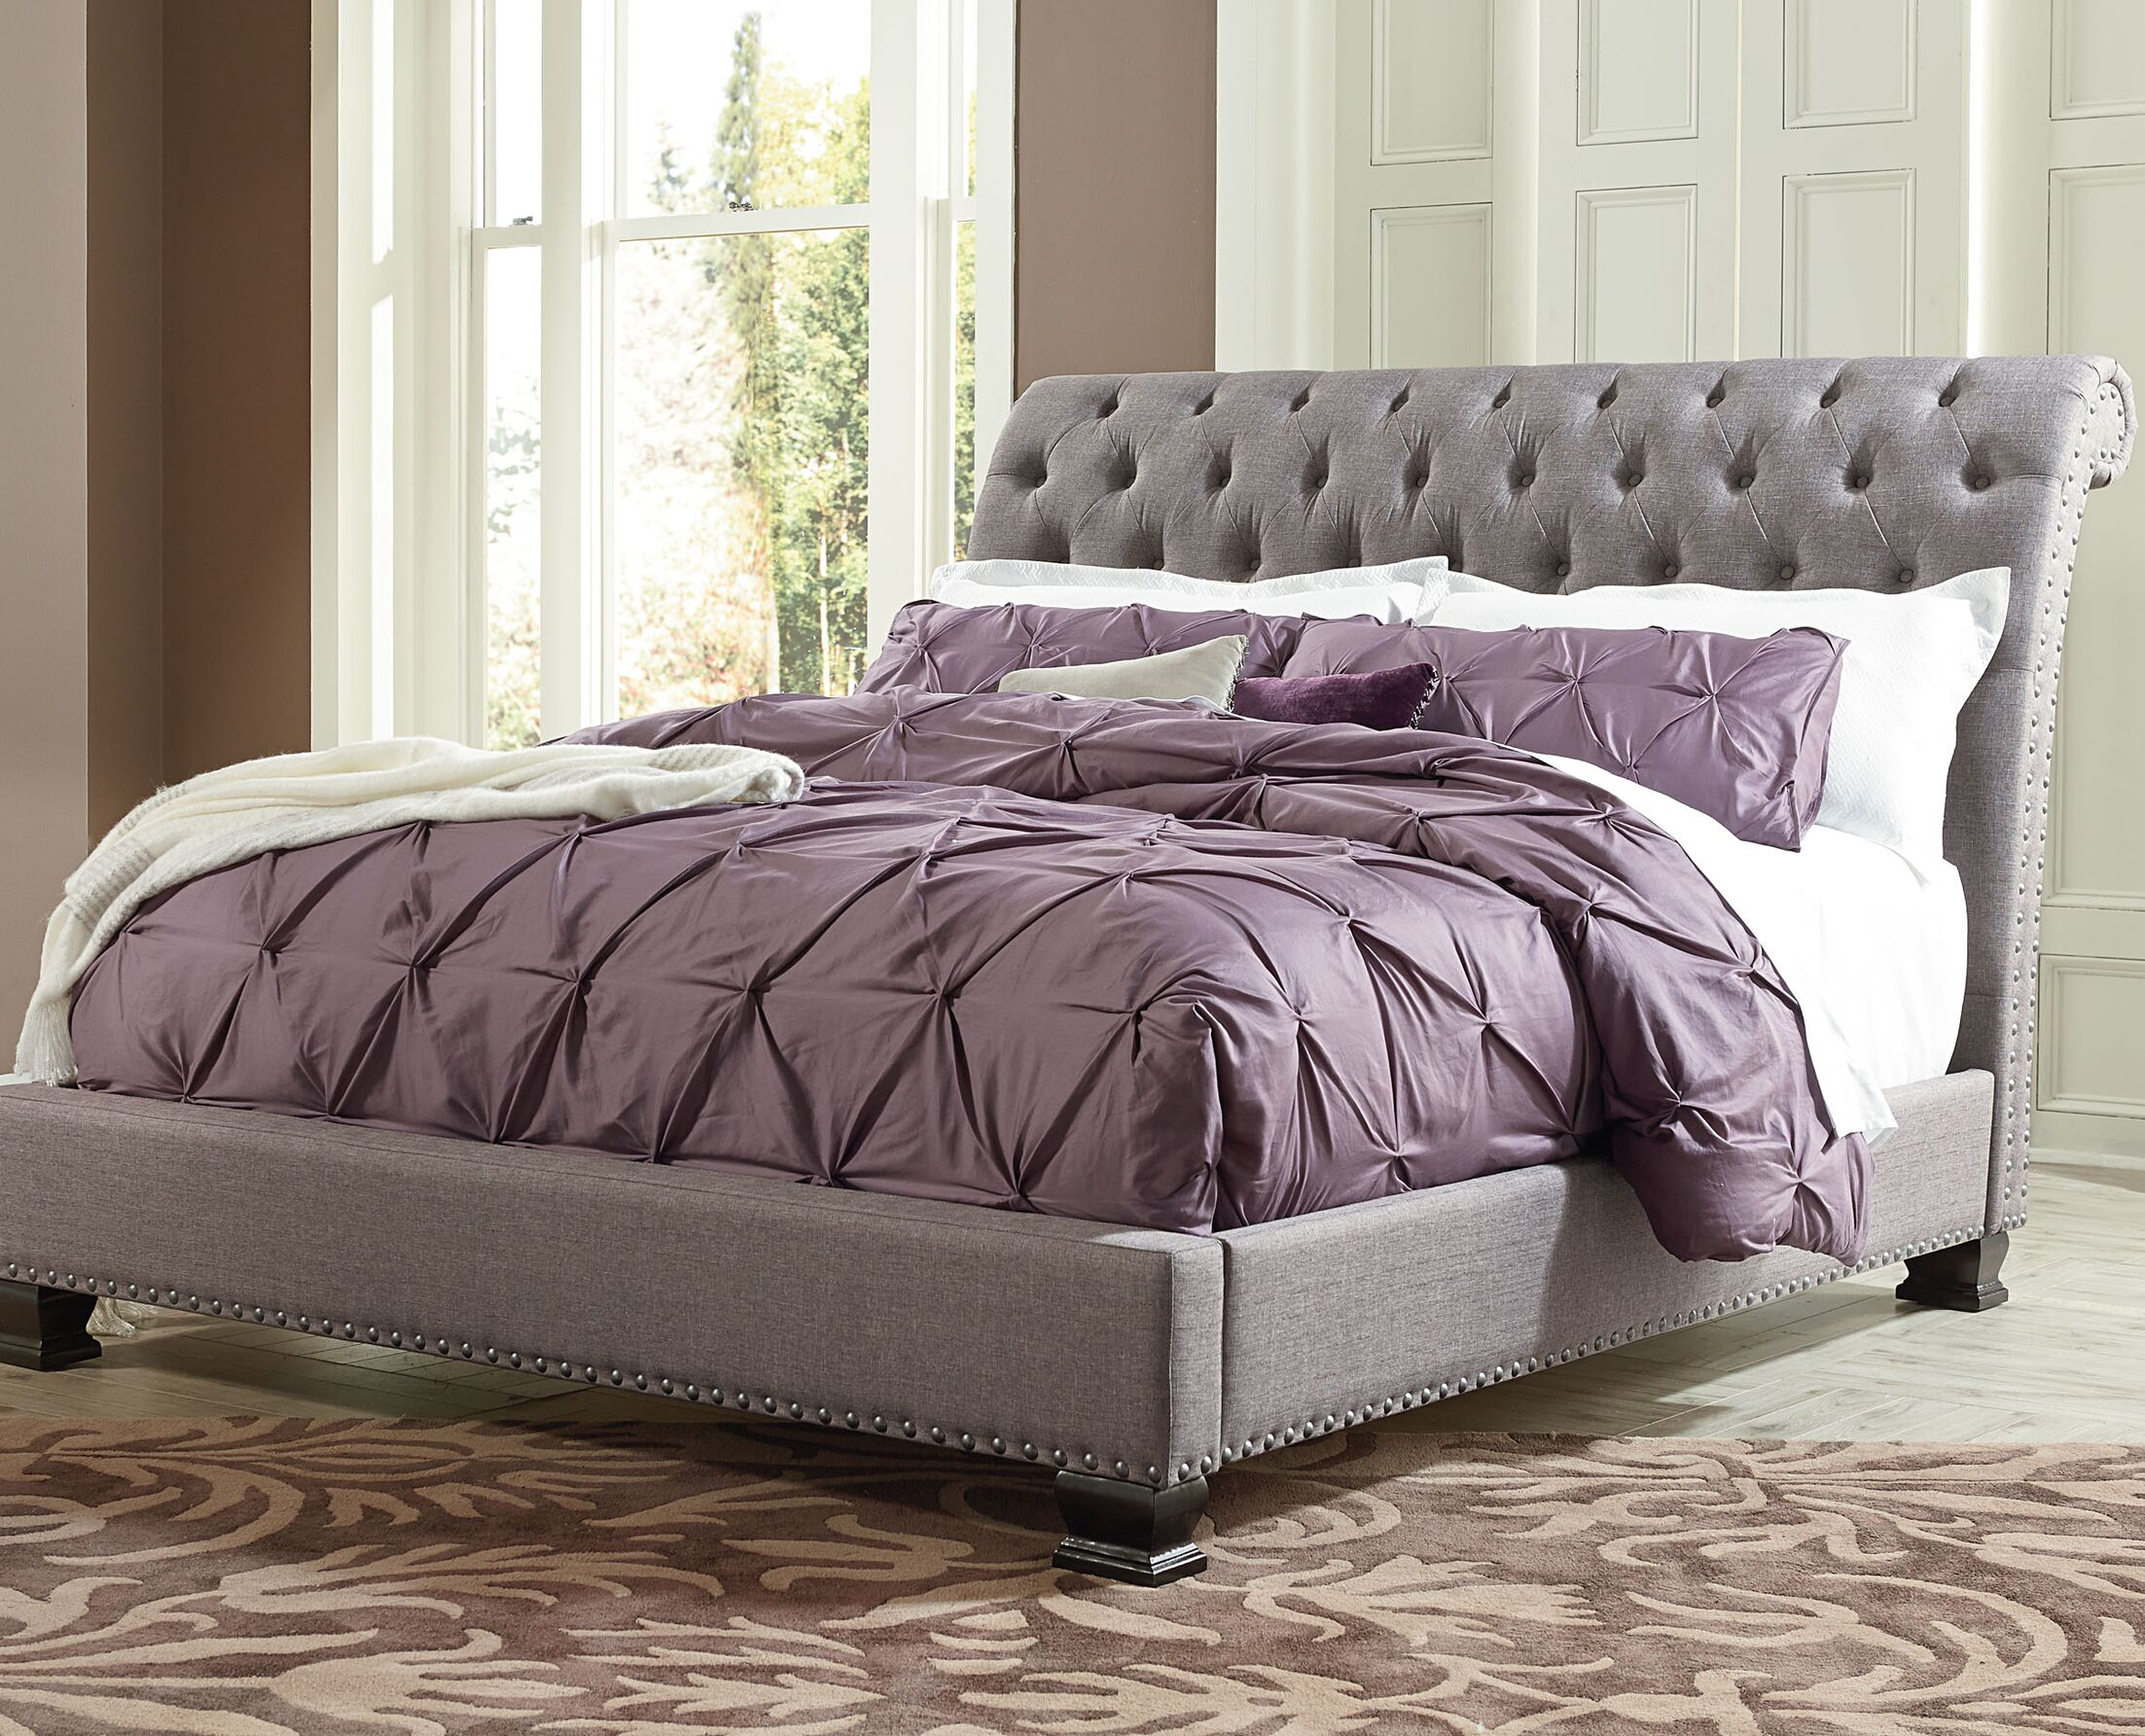 Derrell Upholstered Sleigh Bed